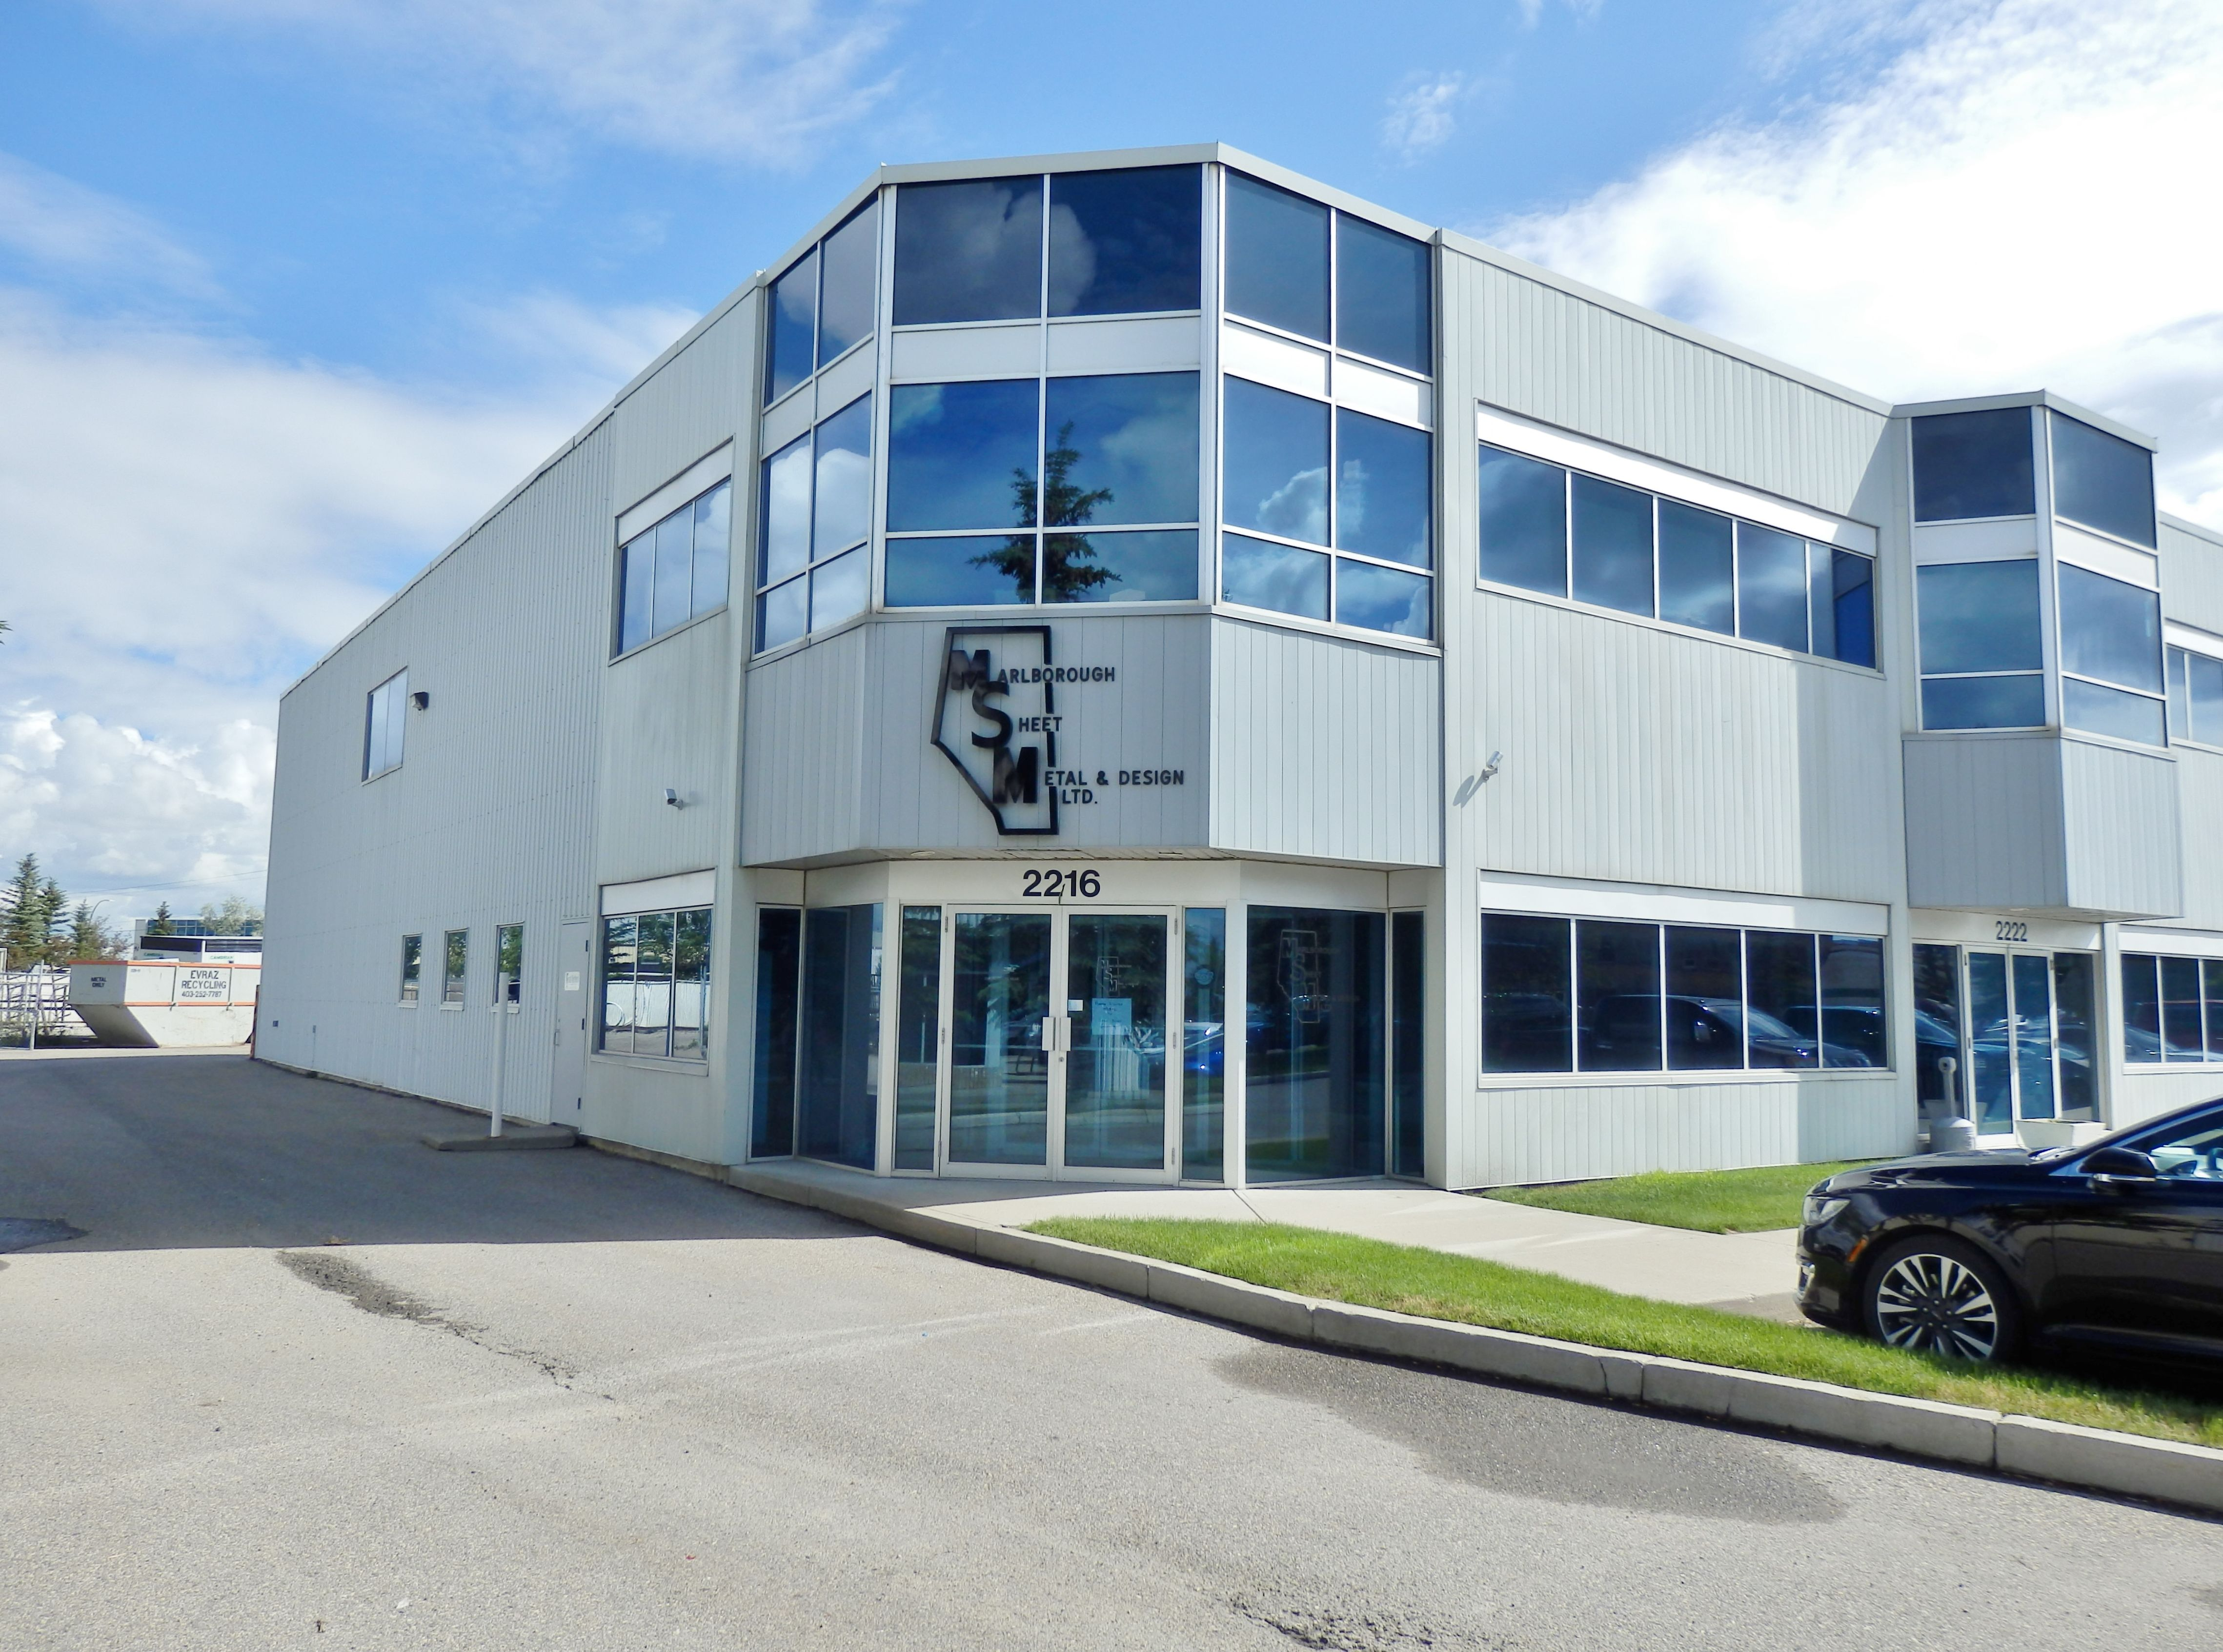 8,700 sq.ft. of office/warehouse with 4,800 sq.ft. fenced